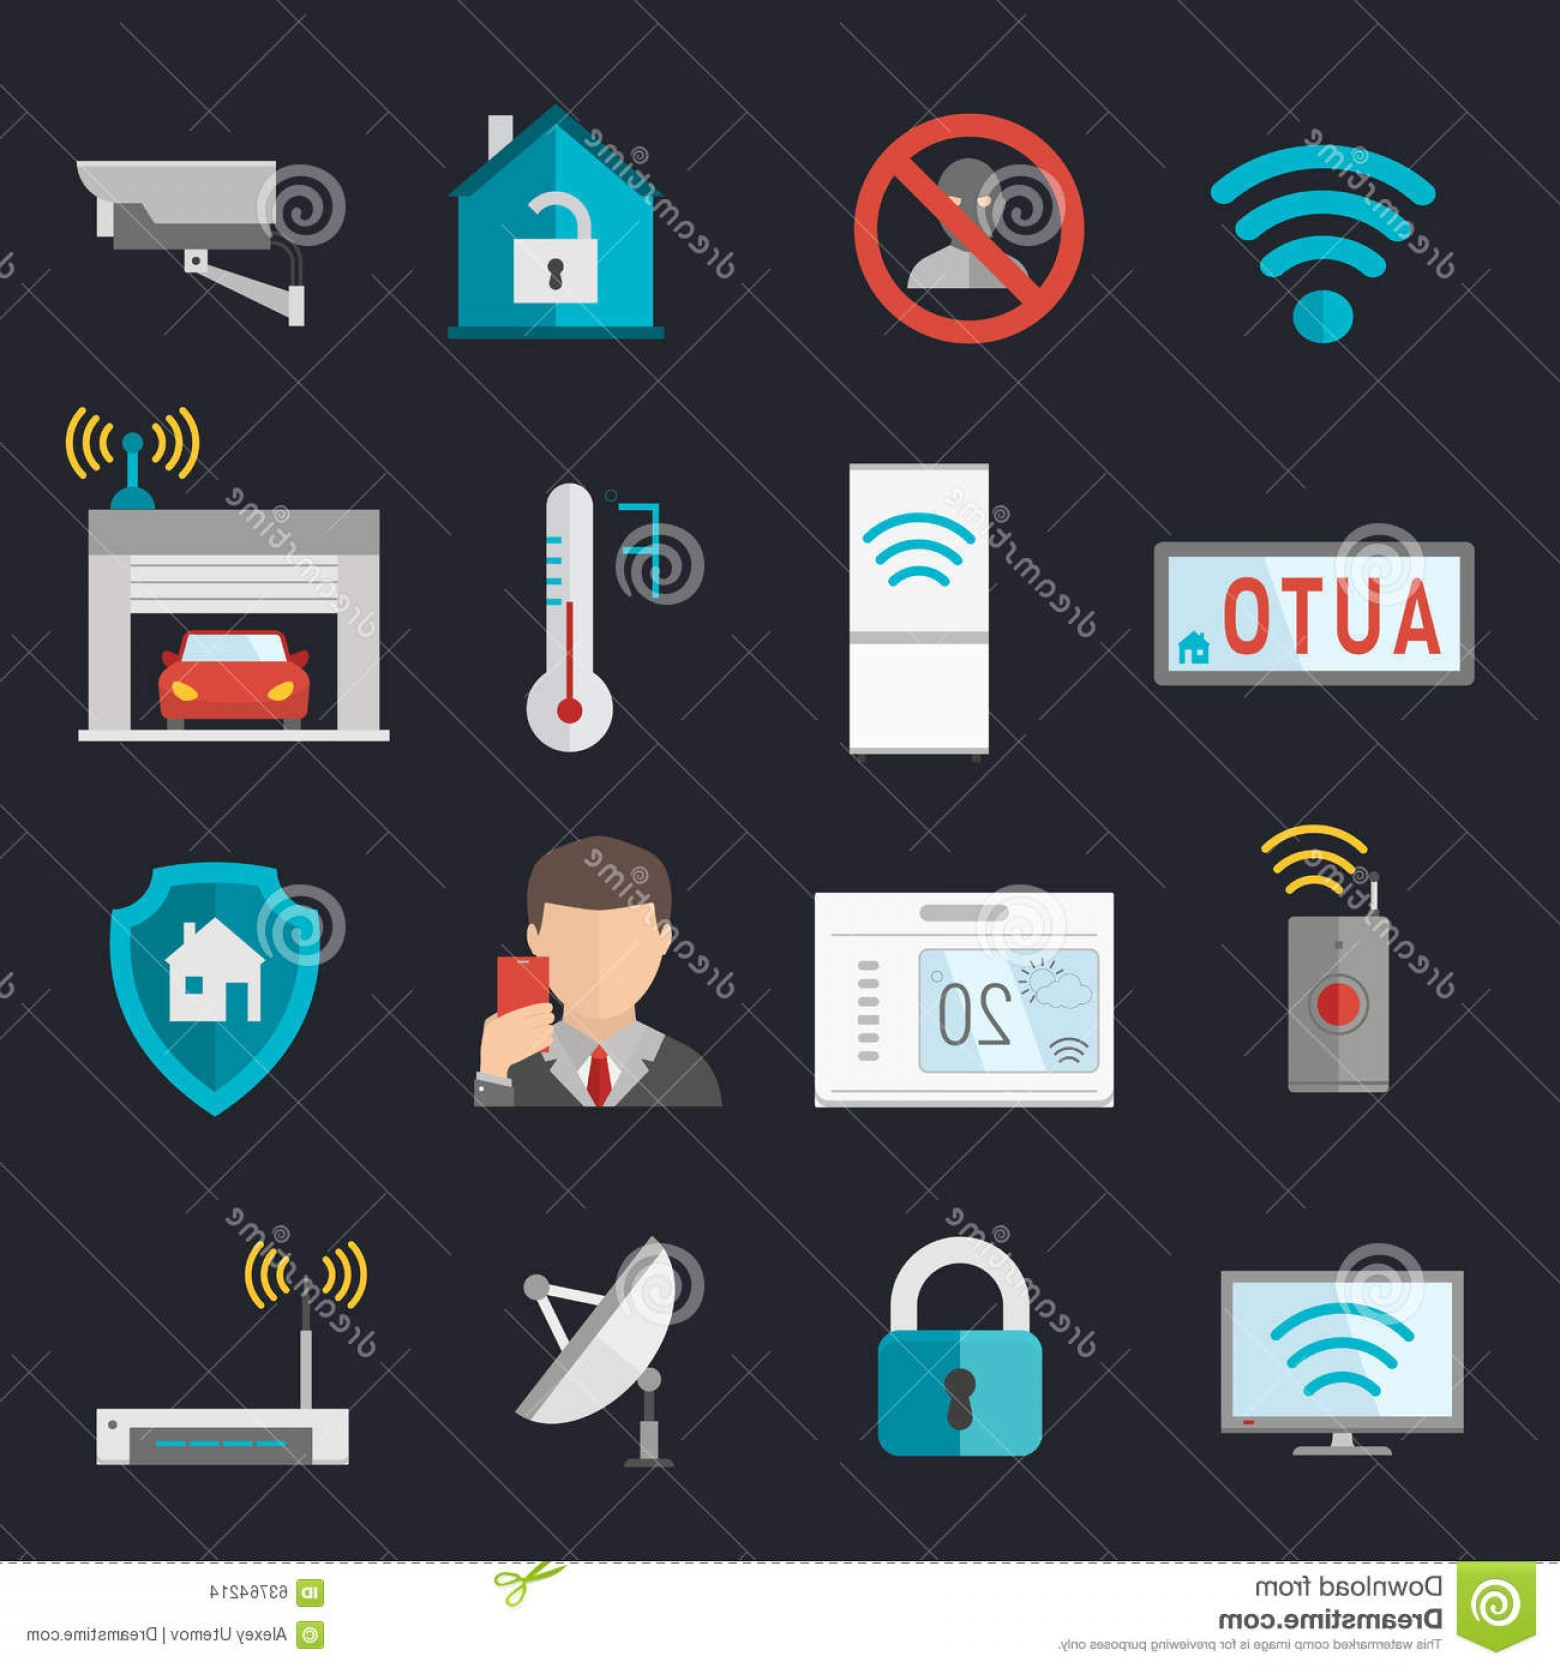 Smart Home Remote Vector: Stock Illustration Remote Home Control System Smart House Vector Illustration Icons Set Image